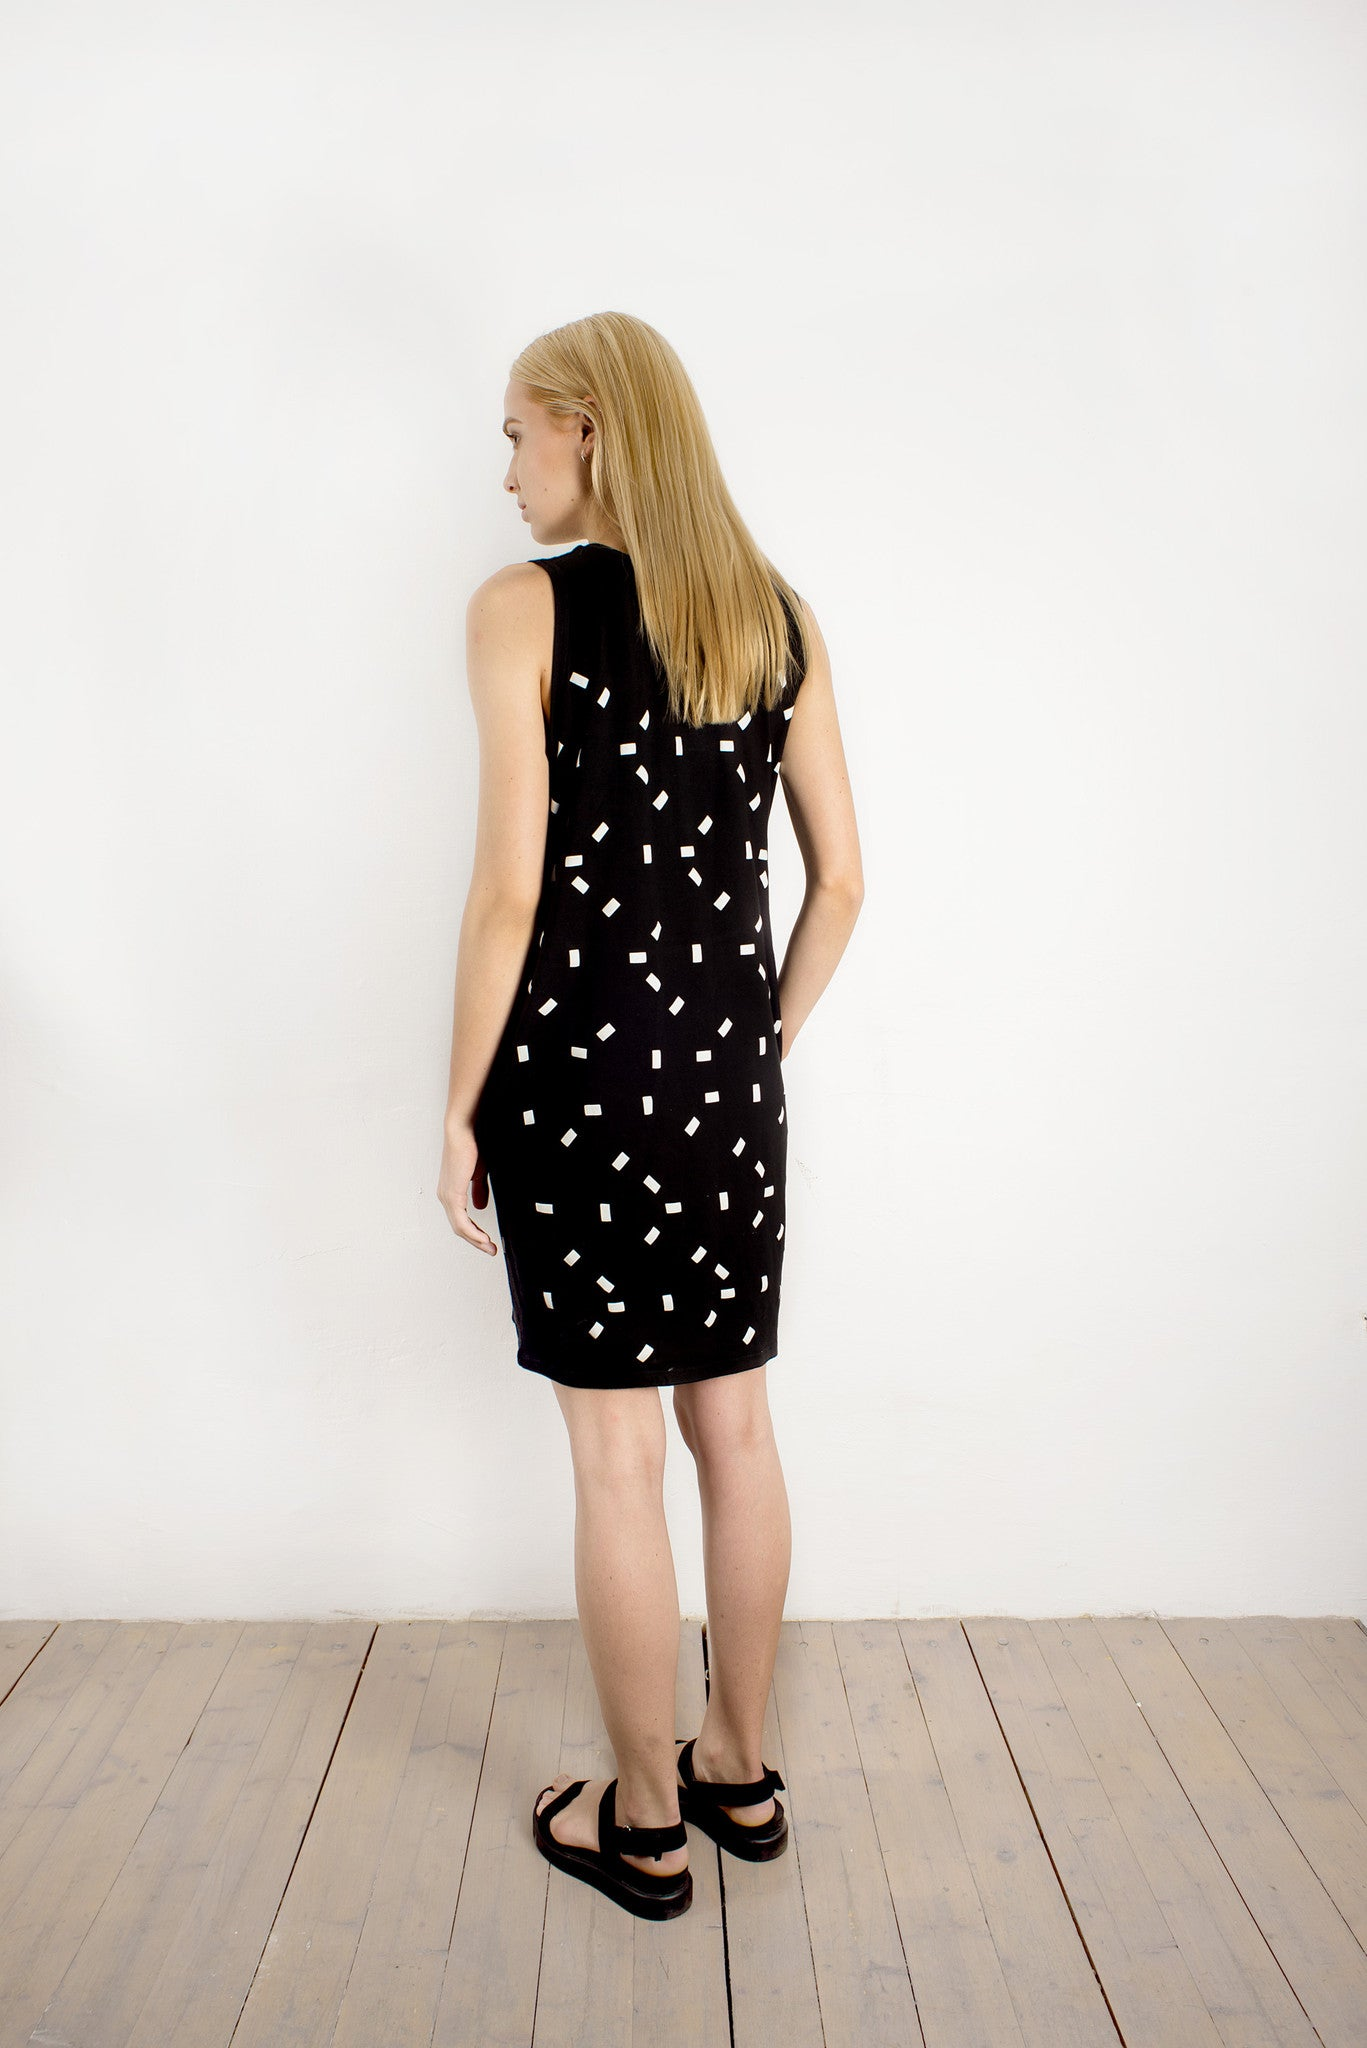 SLEEVELESS DRESS WITH RECTANGLES PATTERN